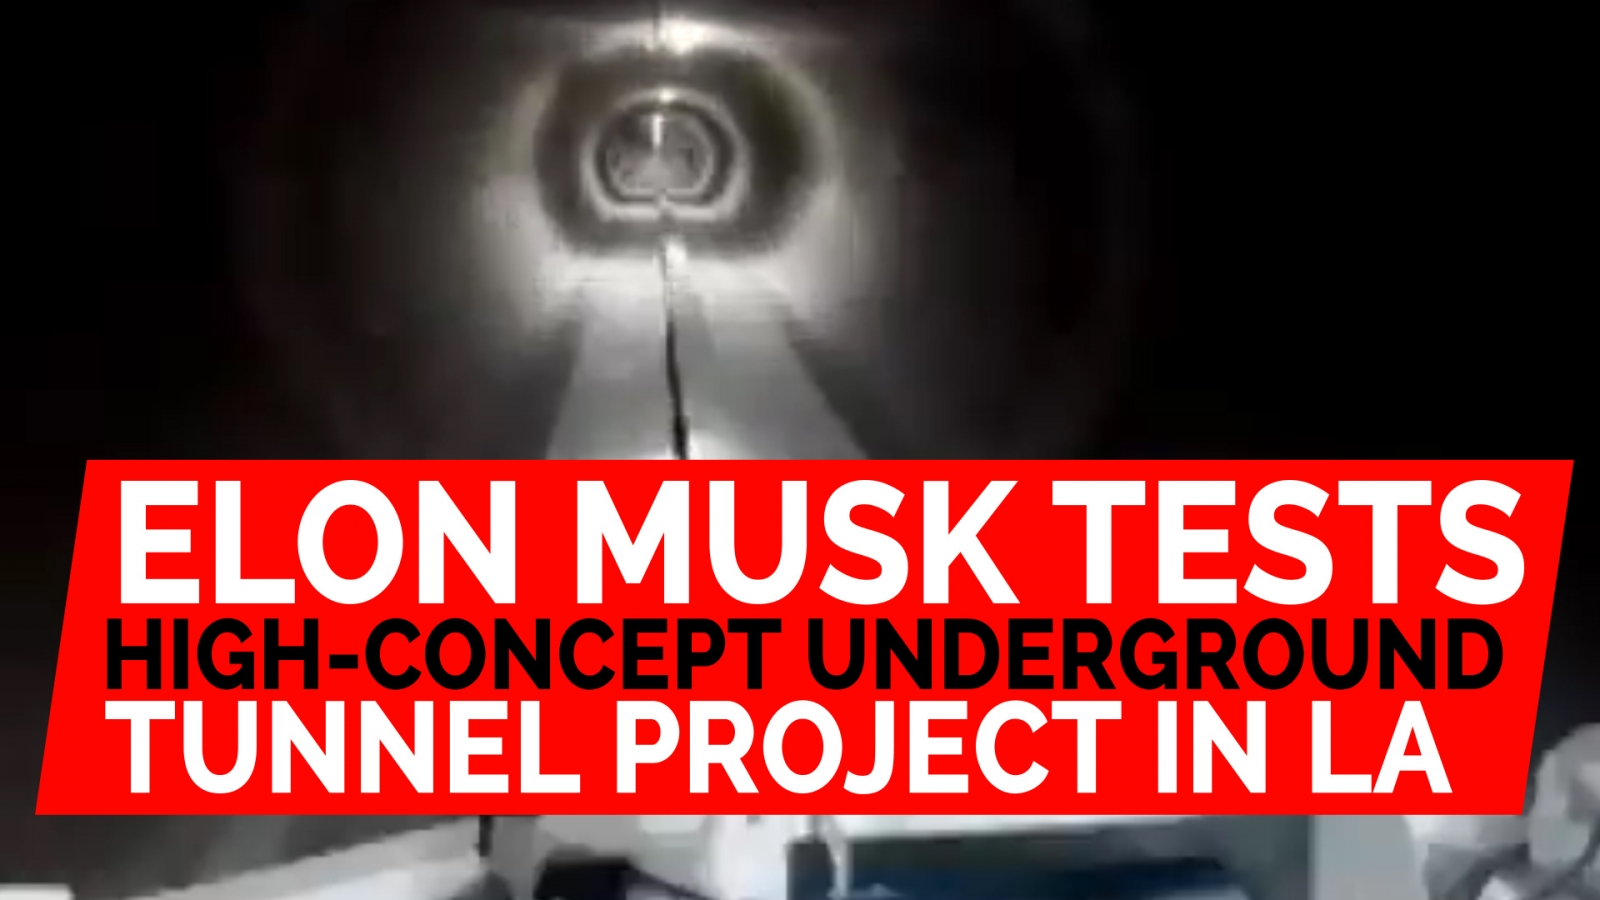 elon-musk-tests-high-concept-underground-tunnel-project-in-la